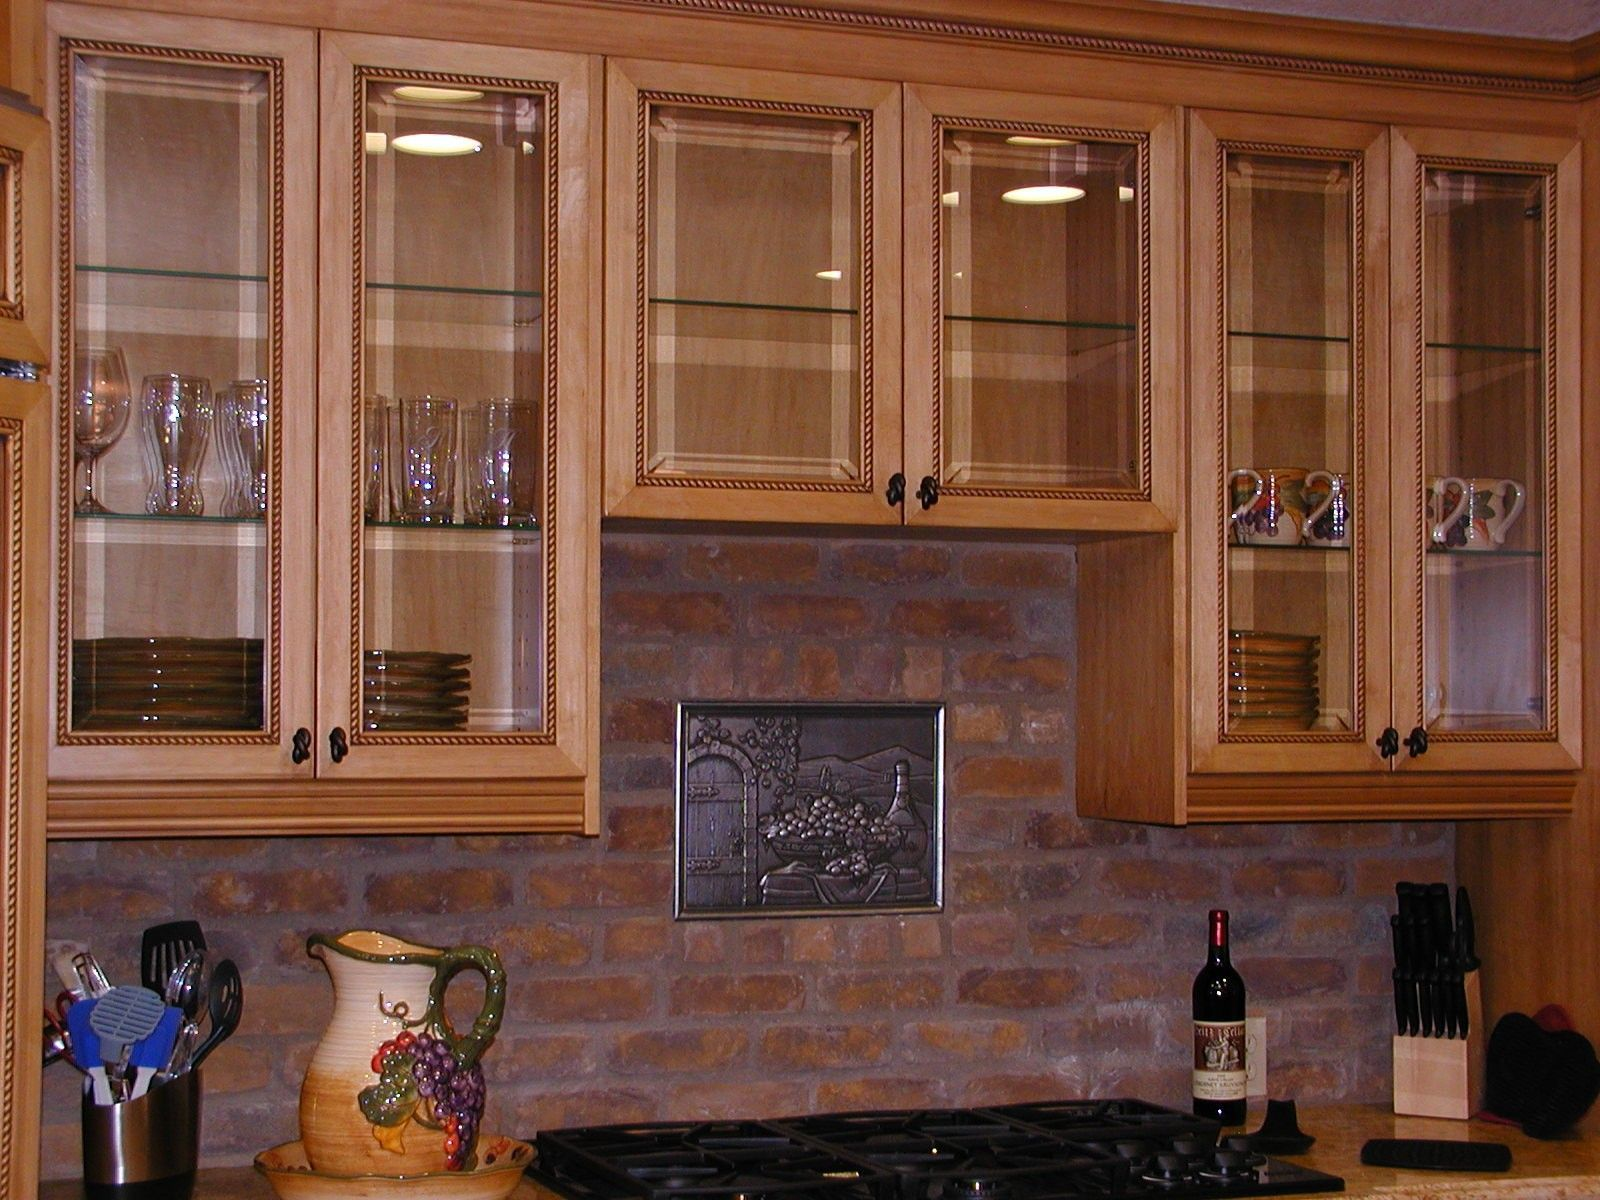 Wood Kitchen Cabinets With Glass Doors Kitchen Ideas Glass Kitchen Cabinet Doors Kitchen Cabinet Doors Glass Kitchen Cabinets